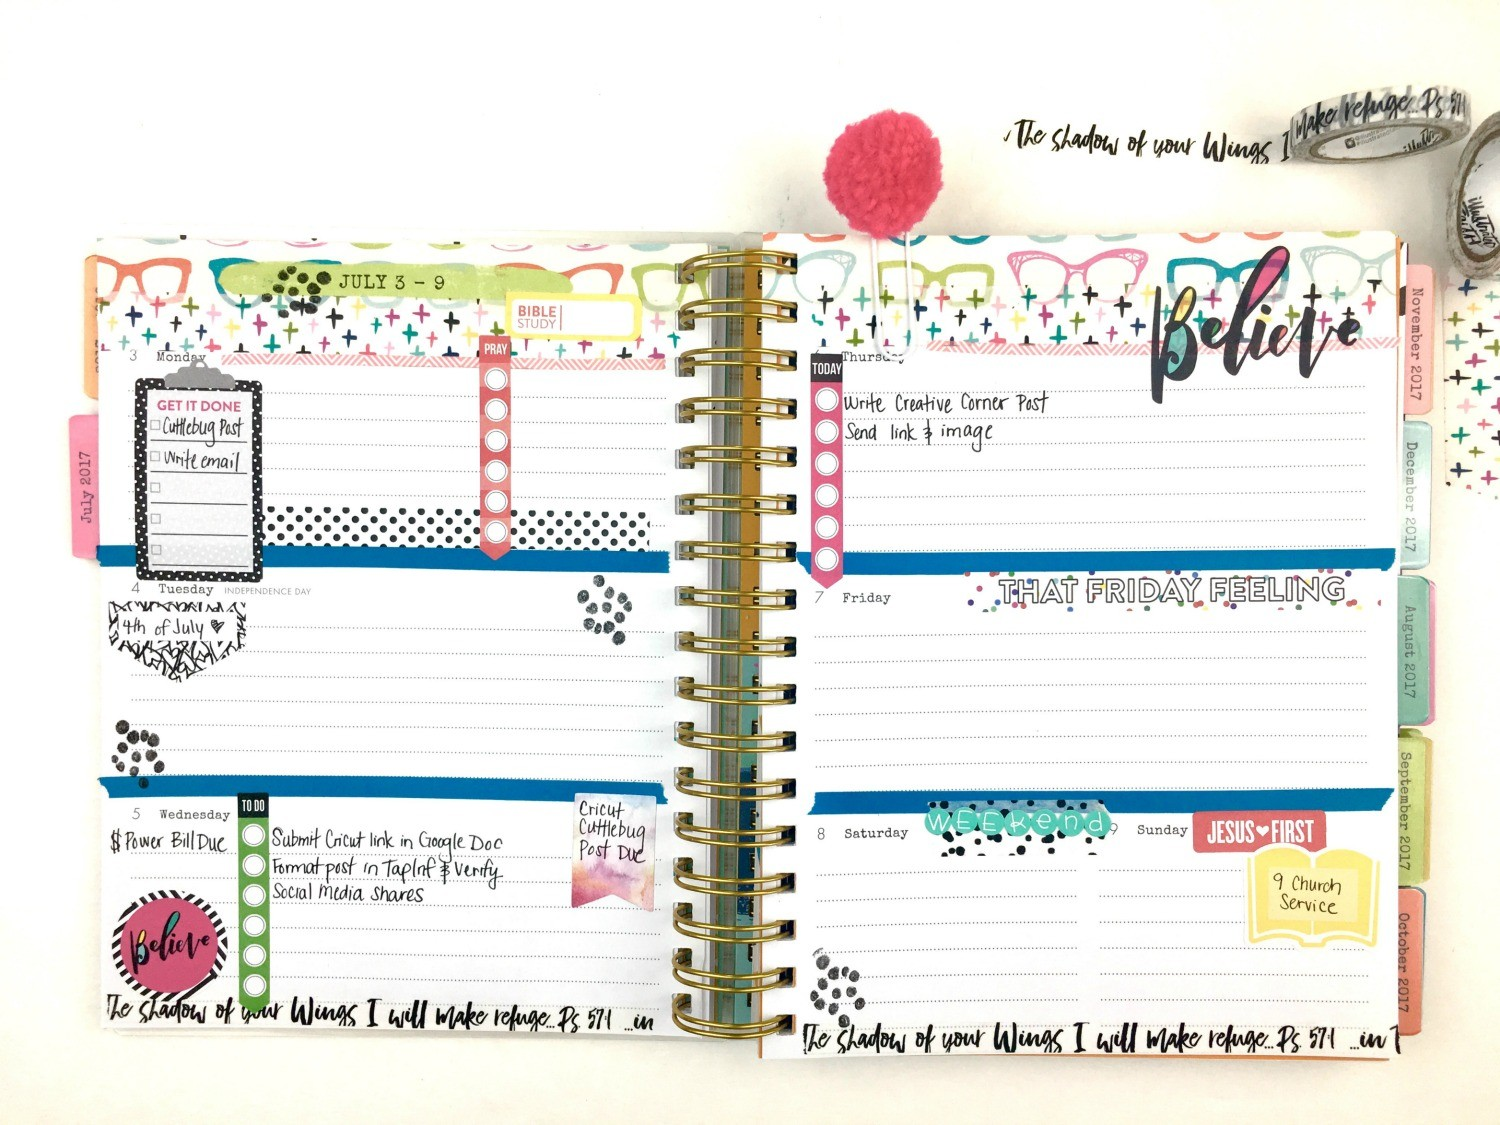 stay organized with planner tips and ideas using the illustrated